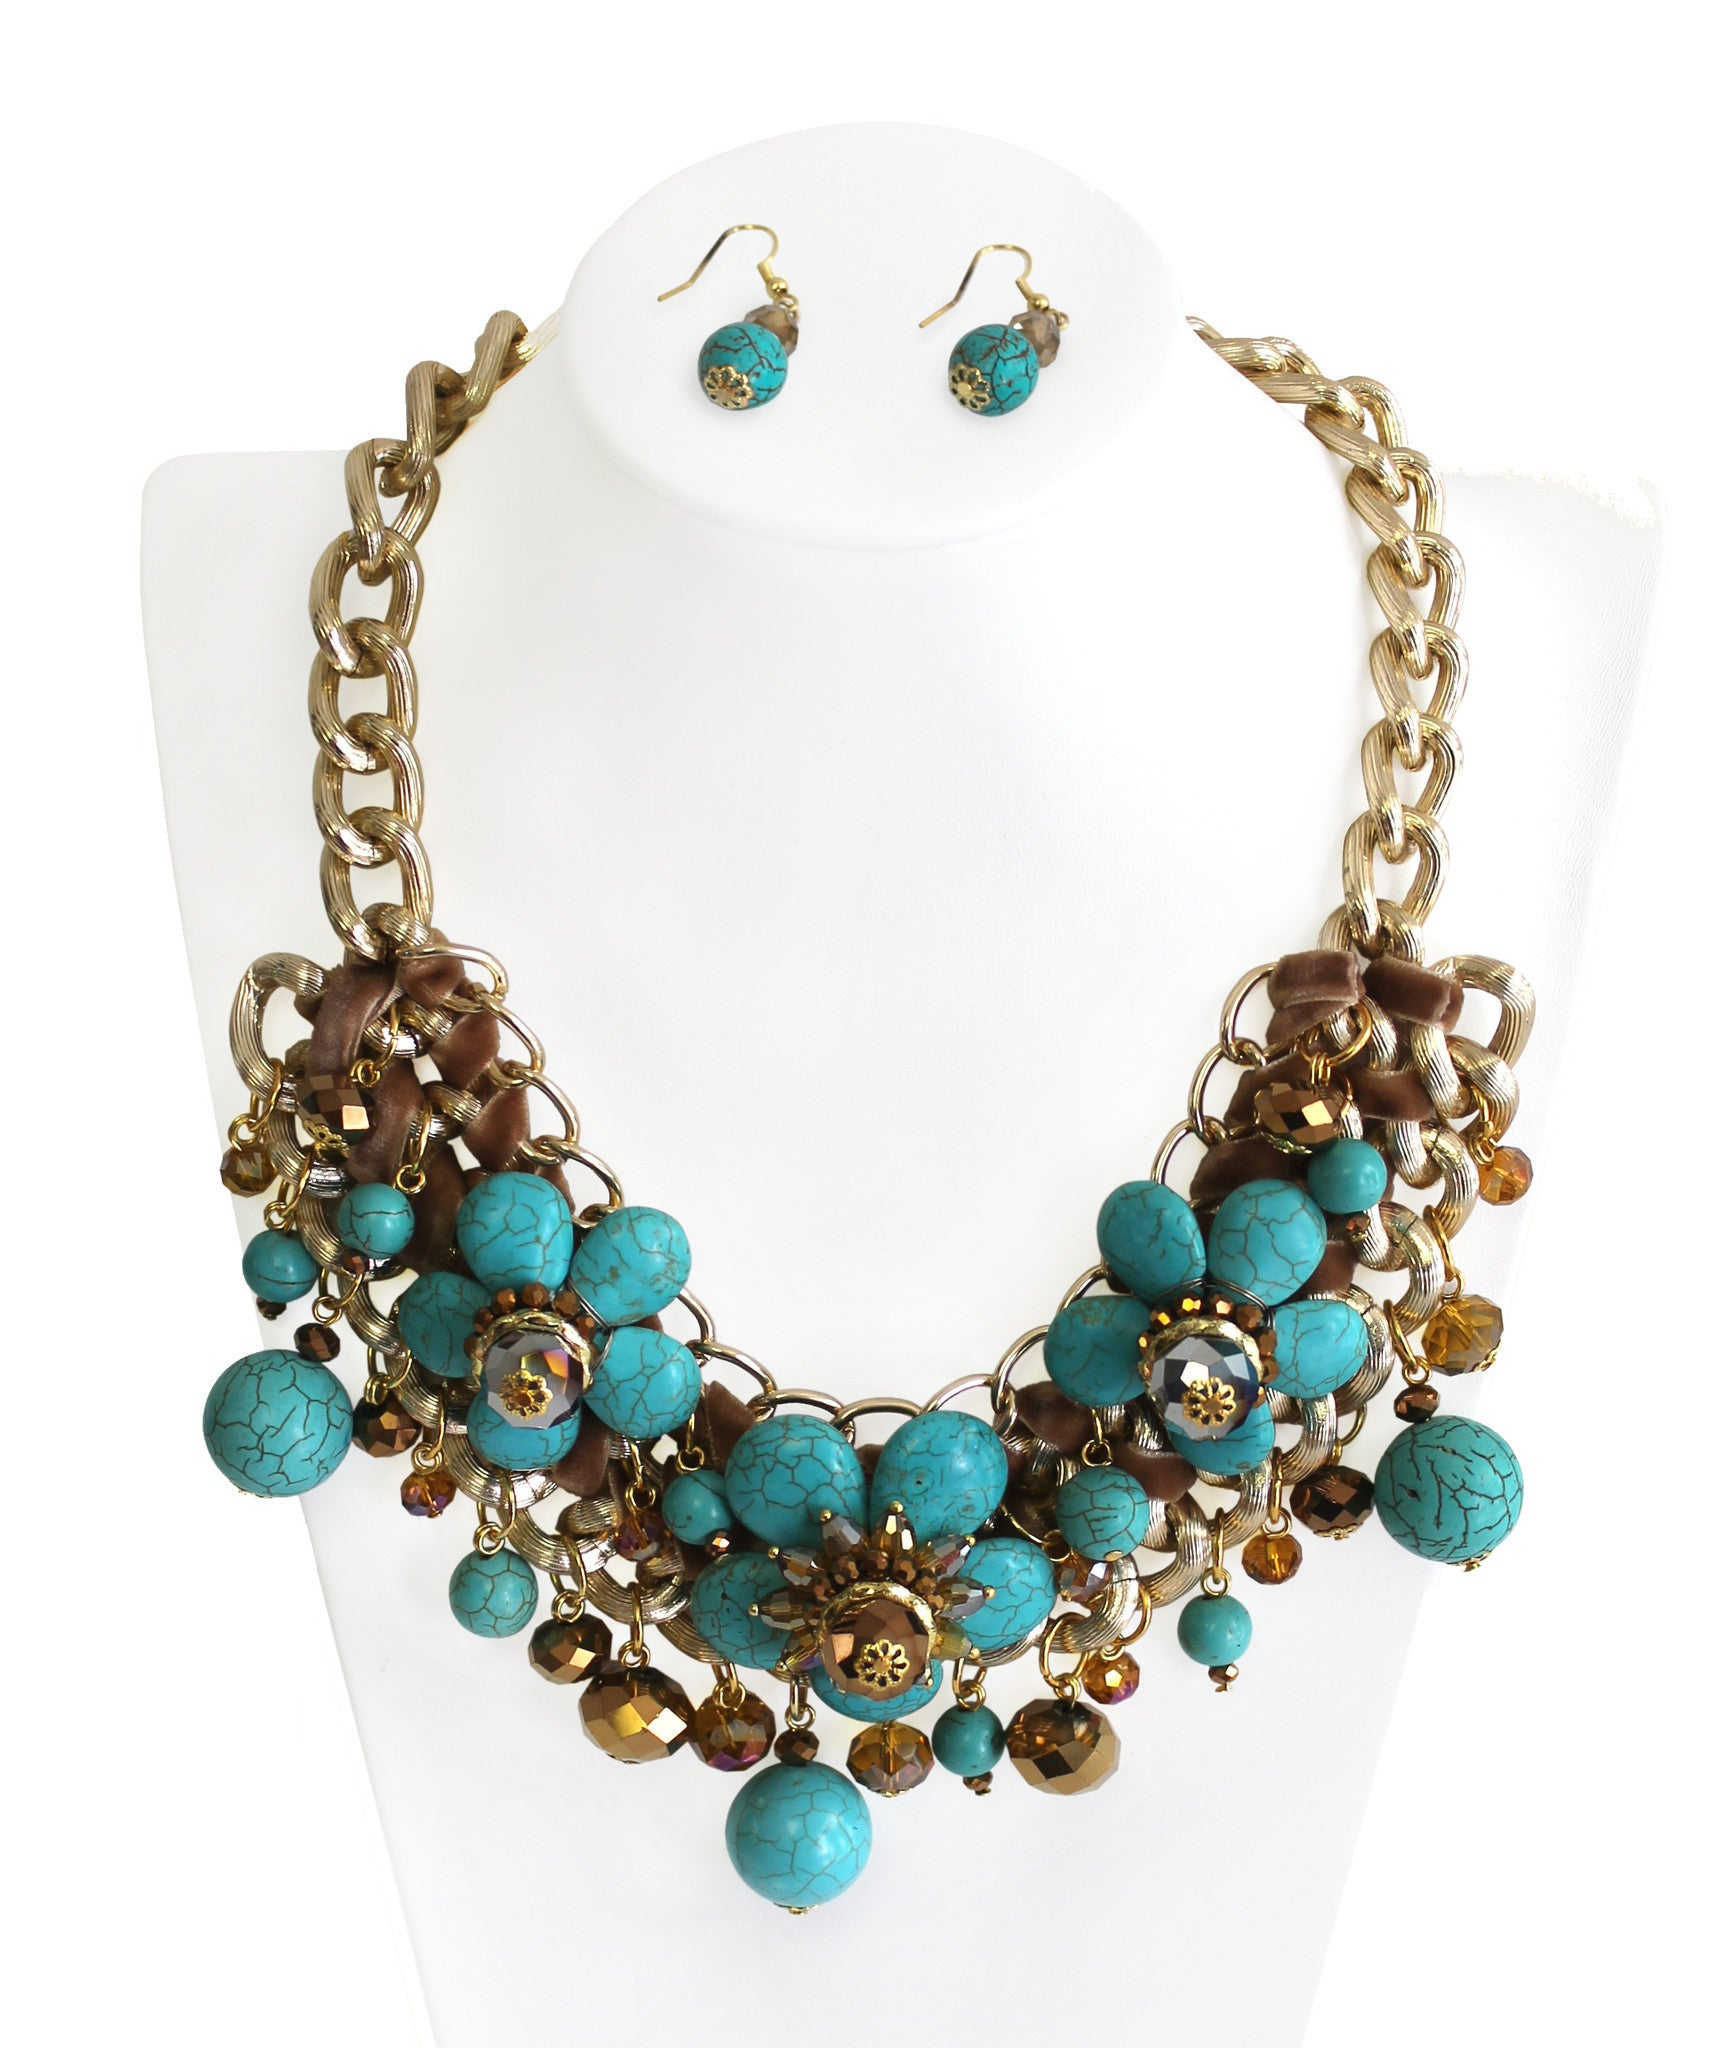 Mr. Song Millinery Necklace | Earrings Set - Turquoise